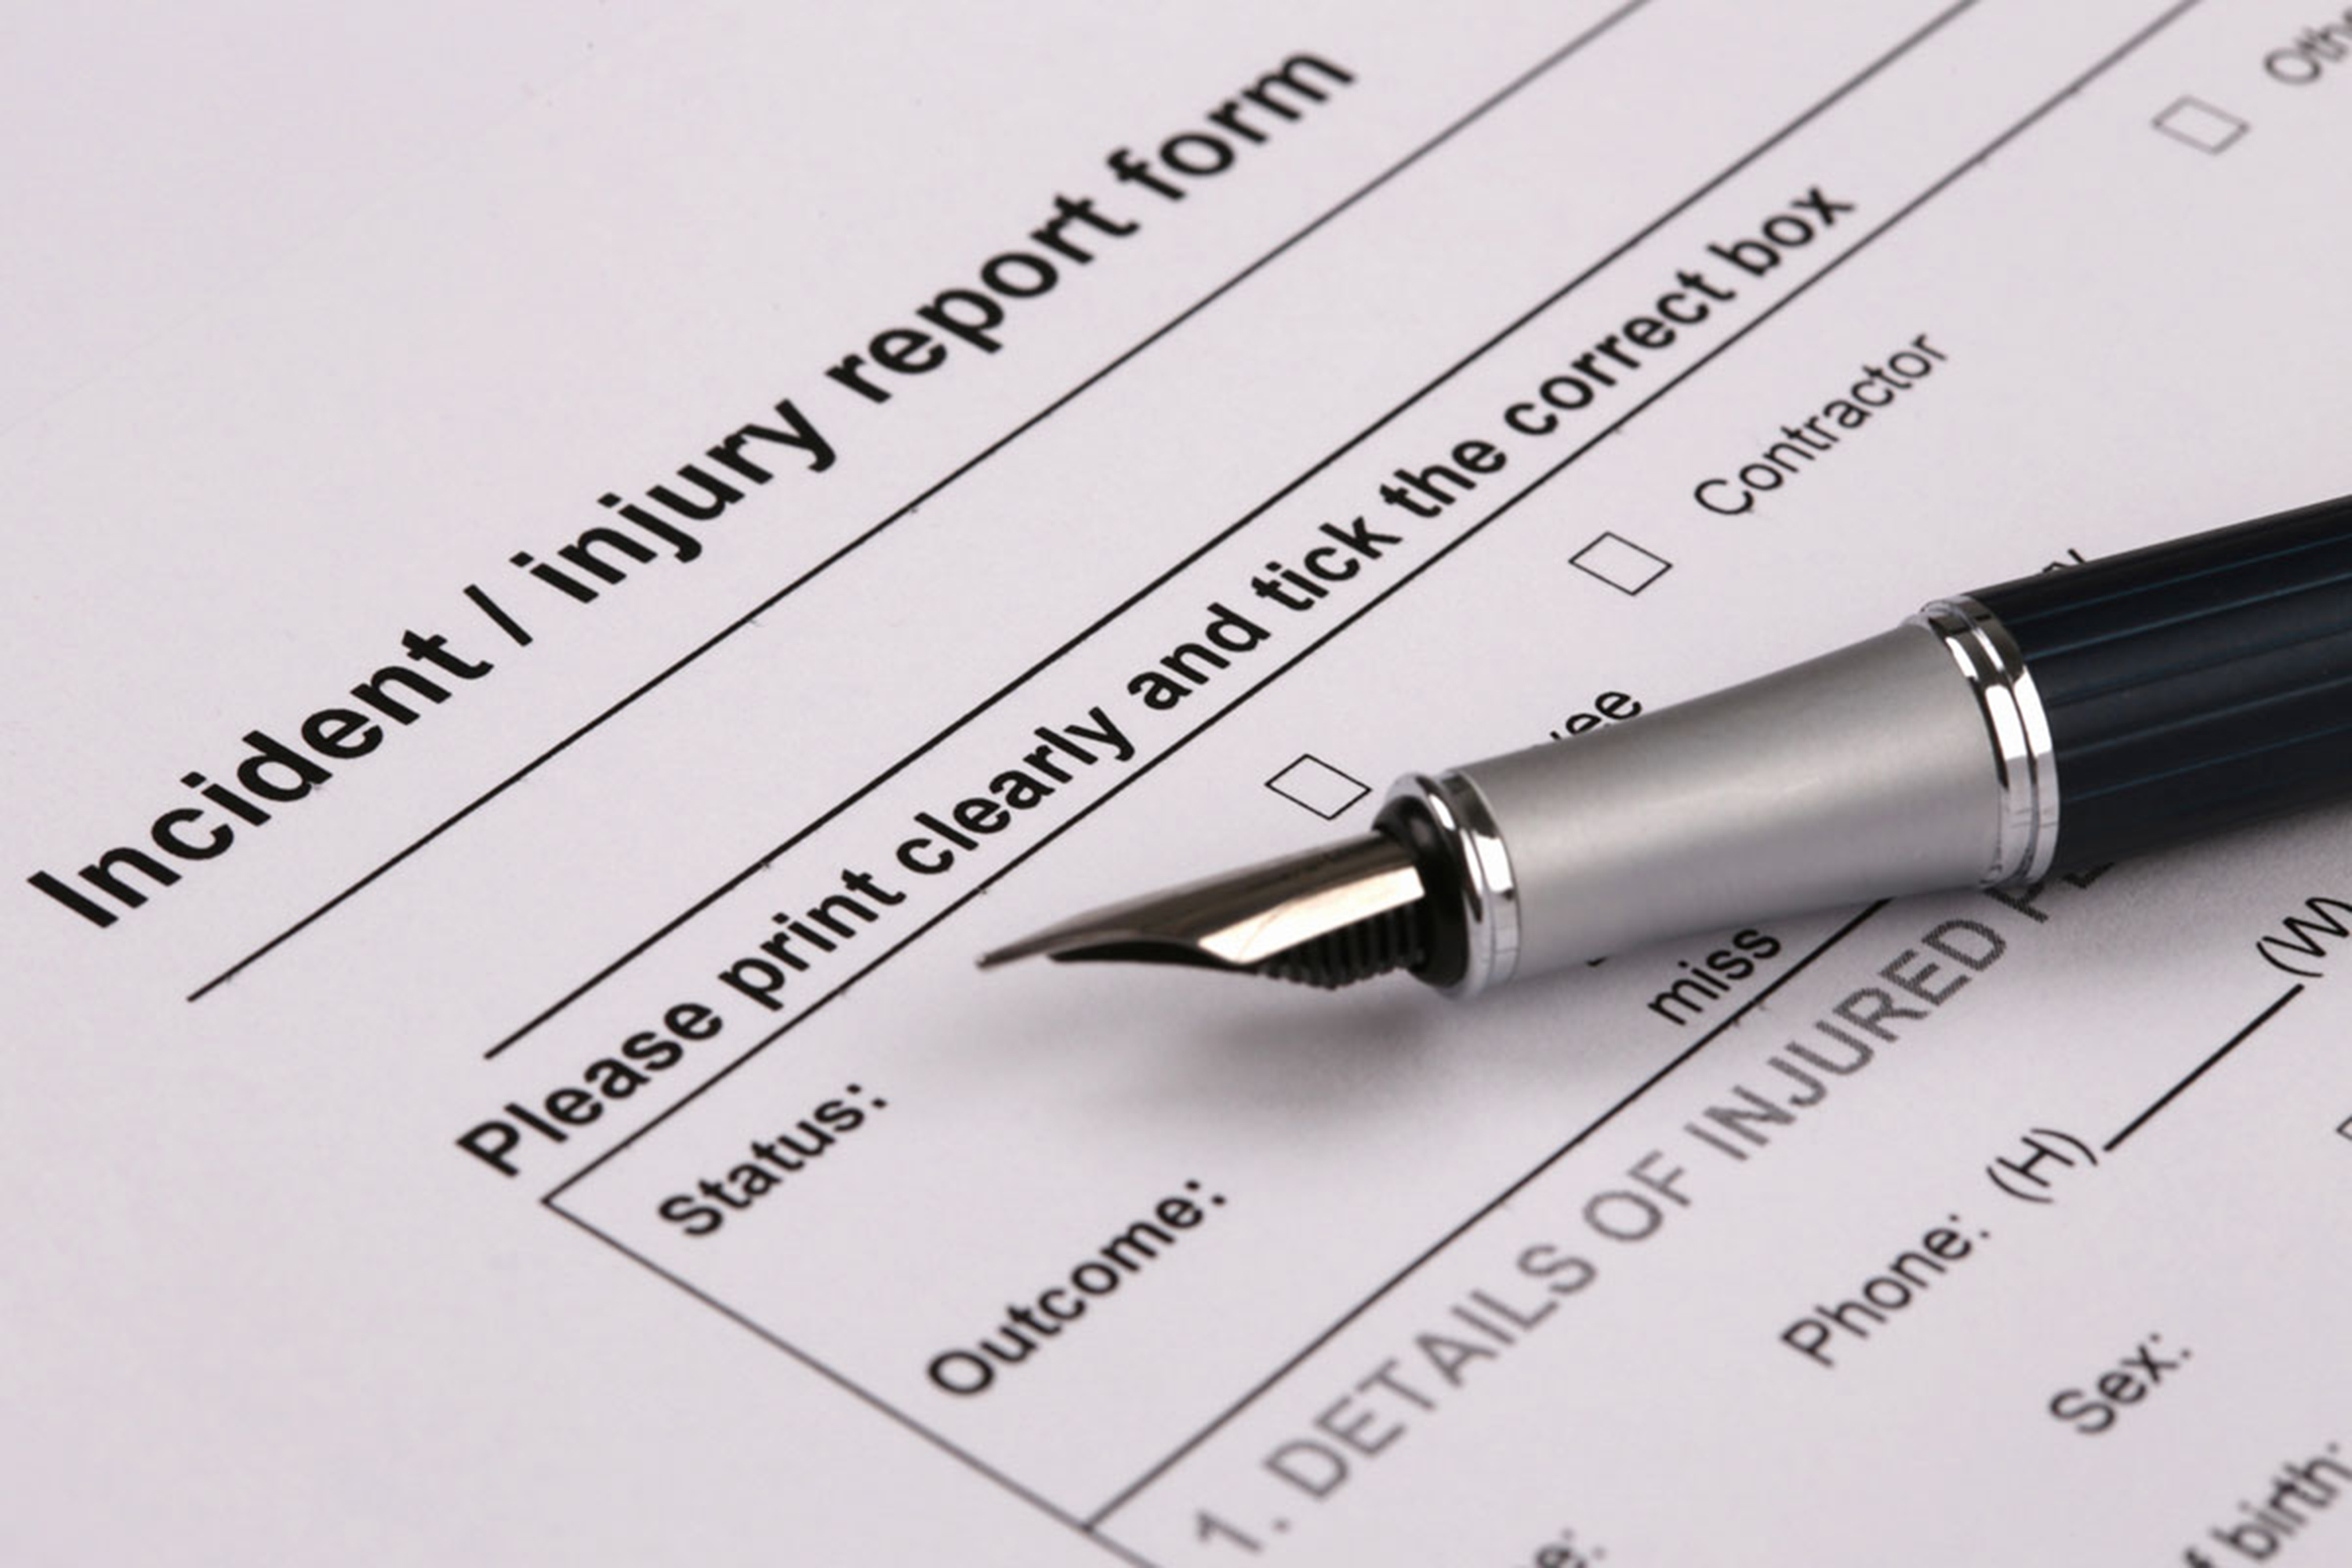 Incident/injury report form. (Shutterstock Photo)